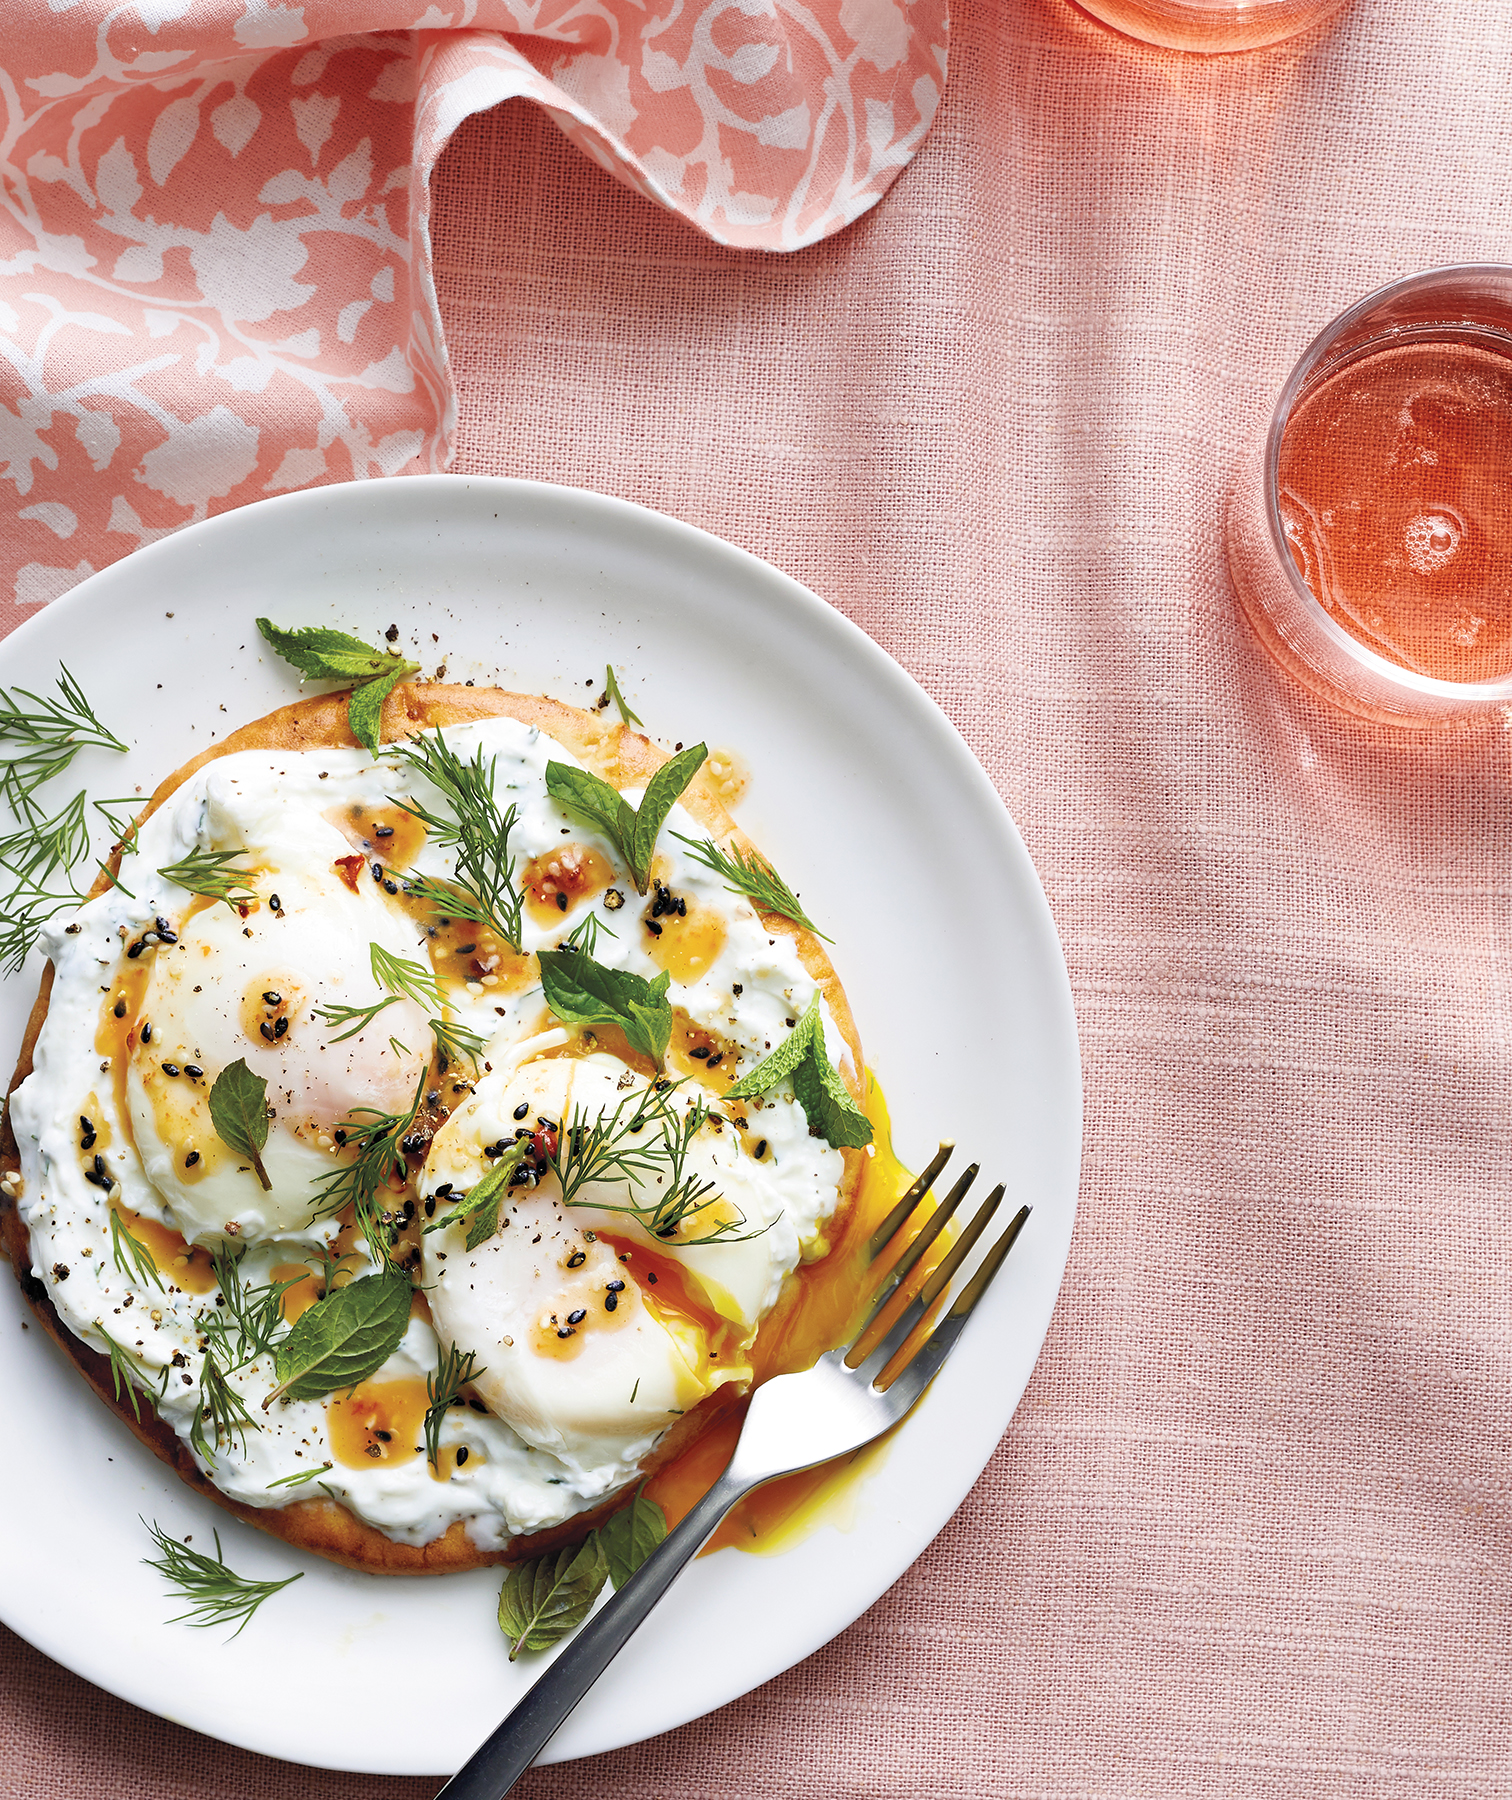 Poached Eggs With Chile Butter and Yogurt